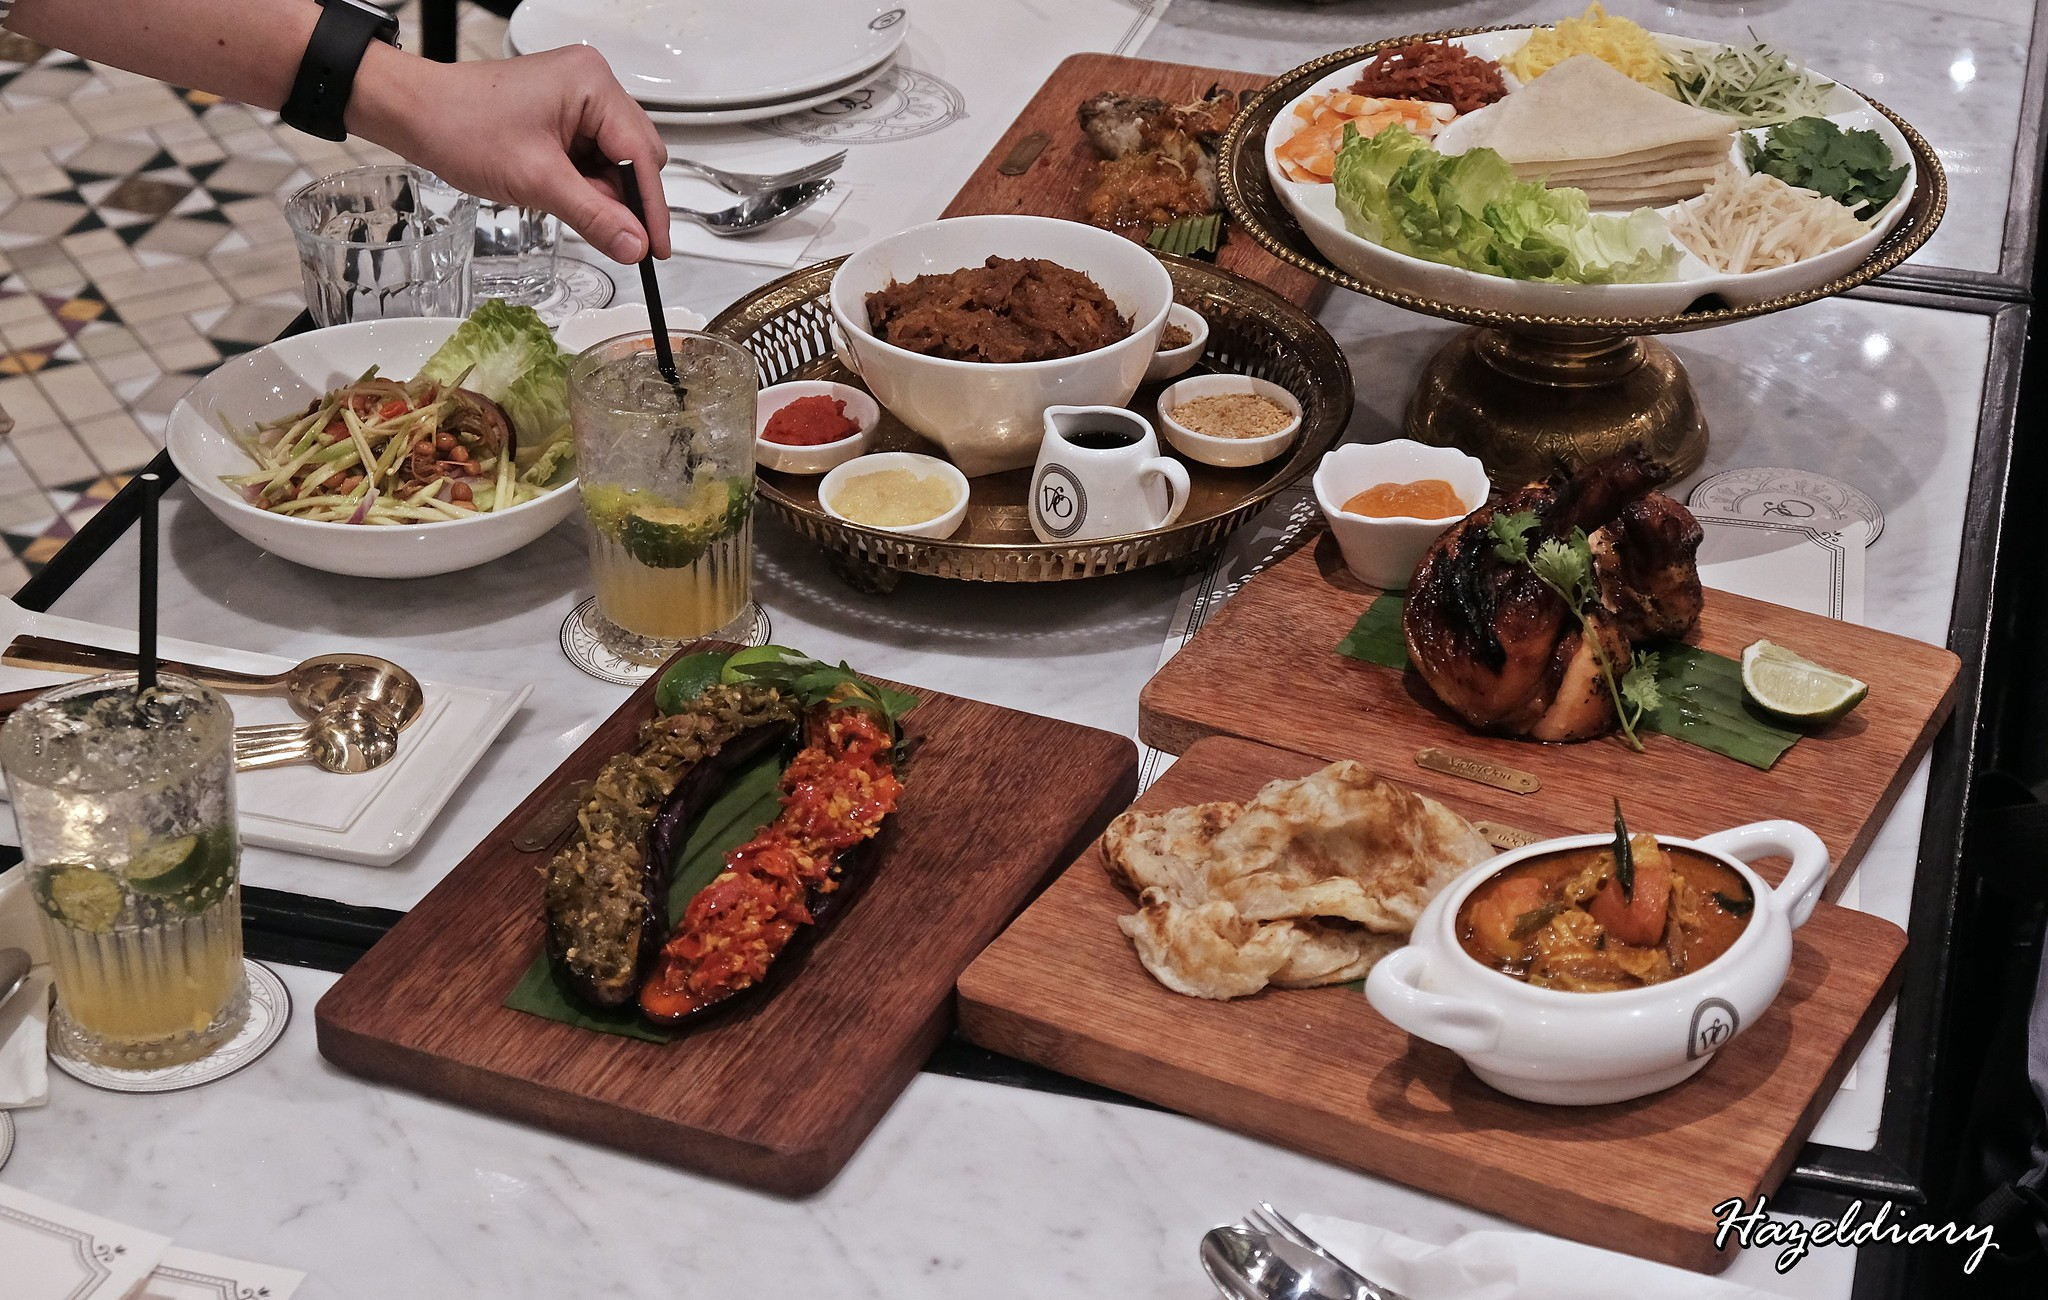 [SG EATS] Violet Onn – Peranakan Vegetarian Friendly Restaurant Opens in Jewel Changi Airport – Jewel Exclusive Dishes Too!